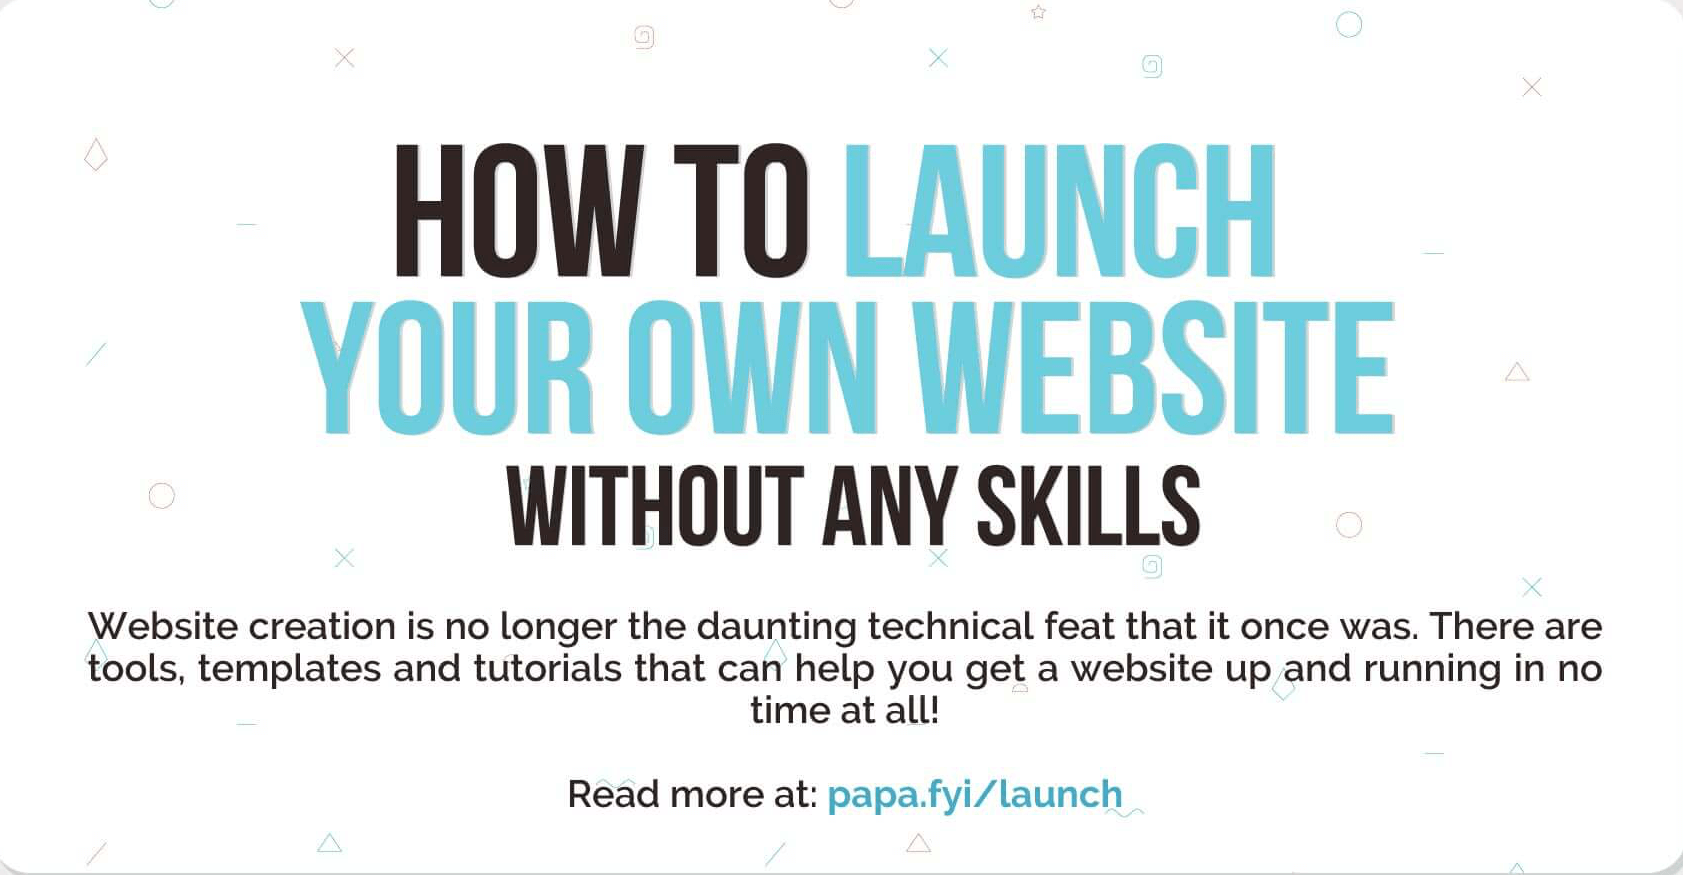 How to launch your website without any skills